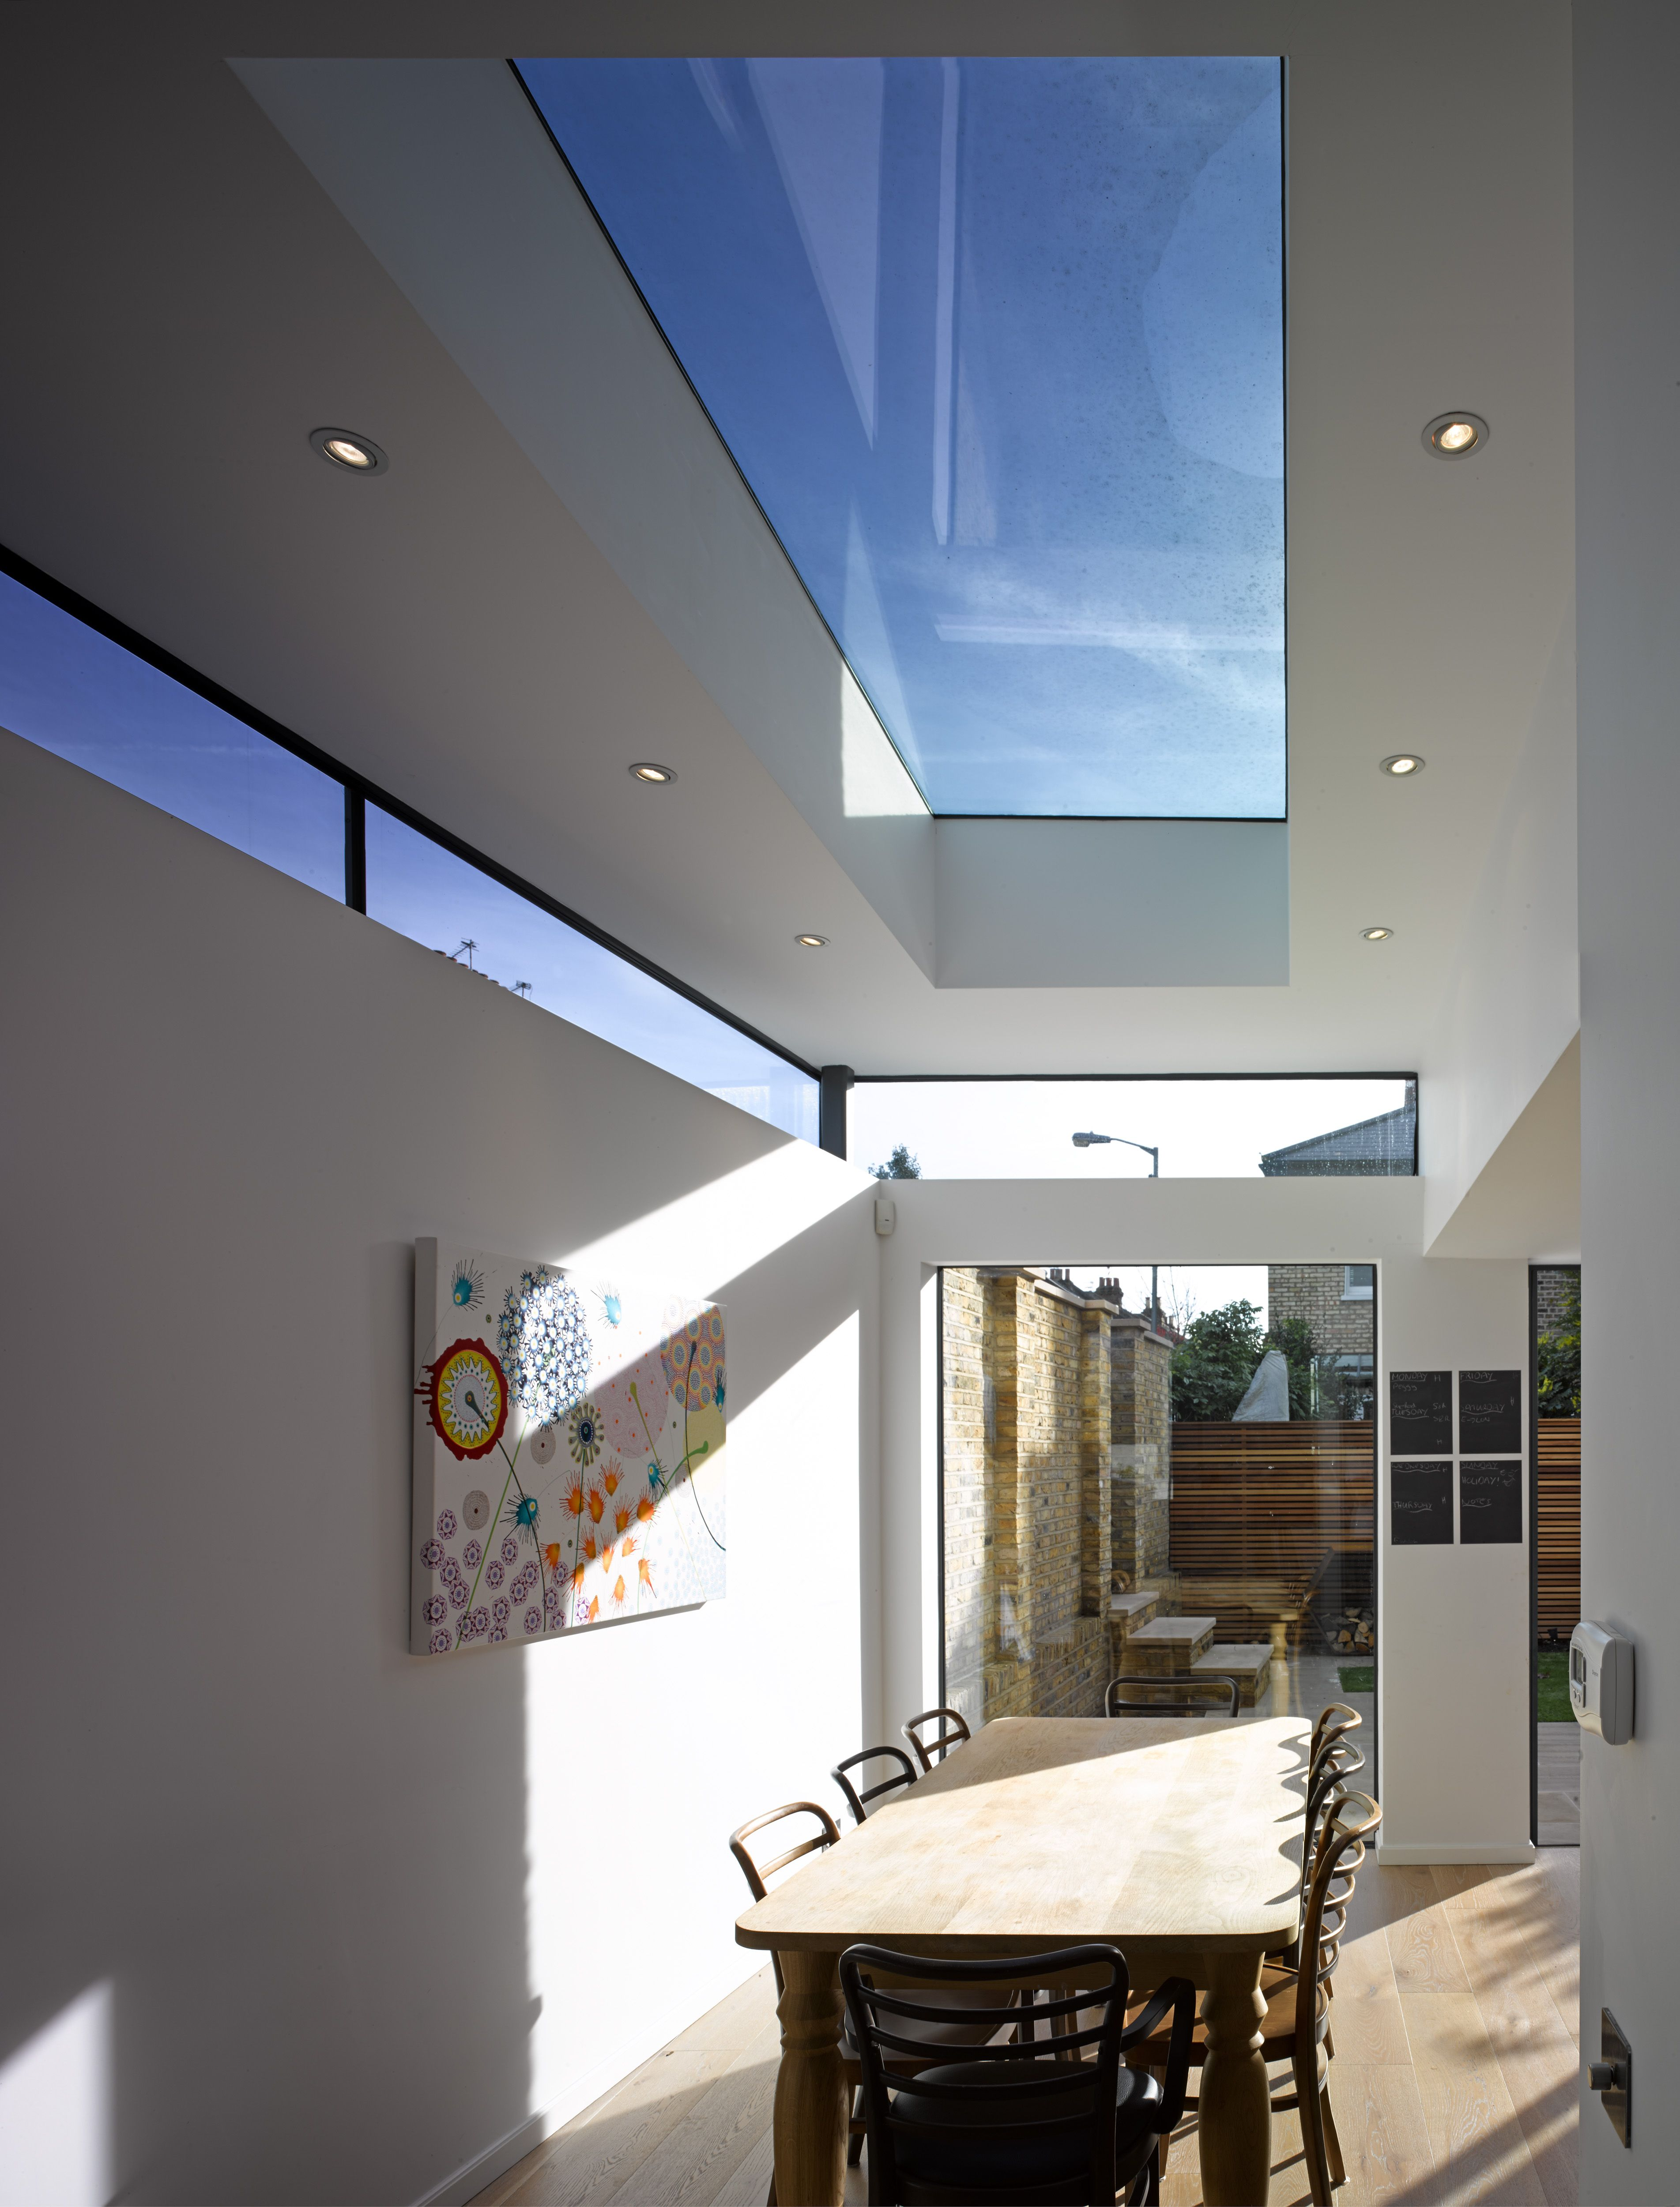 Another flat roof extension with roof light and high level